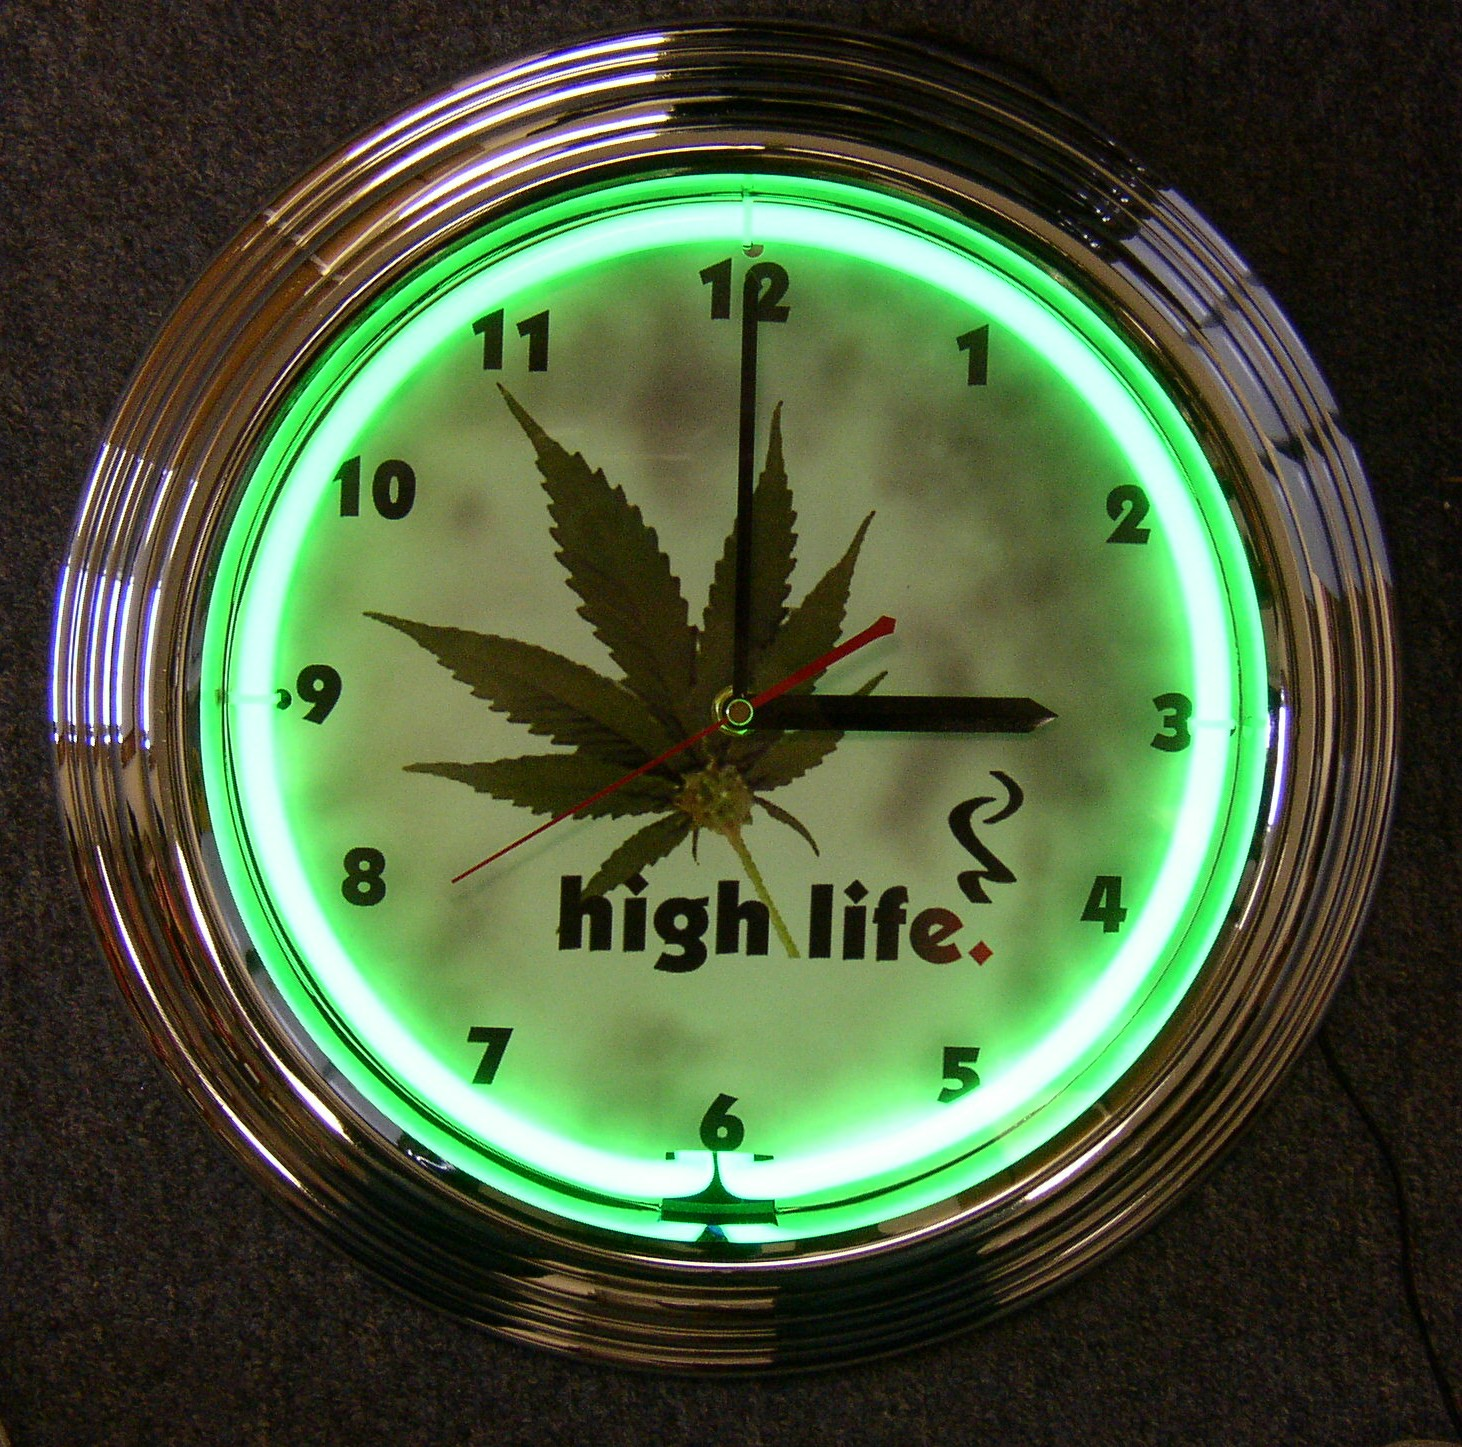 High Life Neon Clock by Neonetics in Wall Clocks